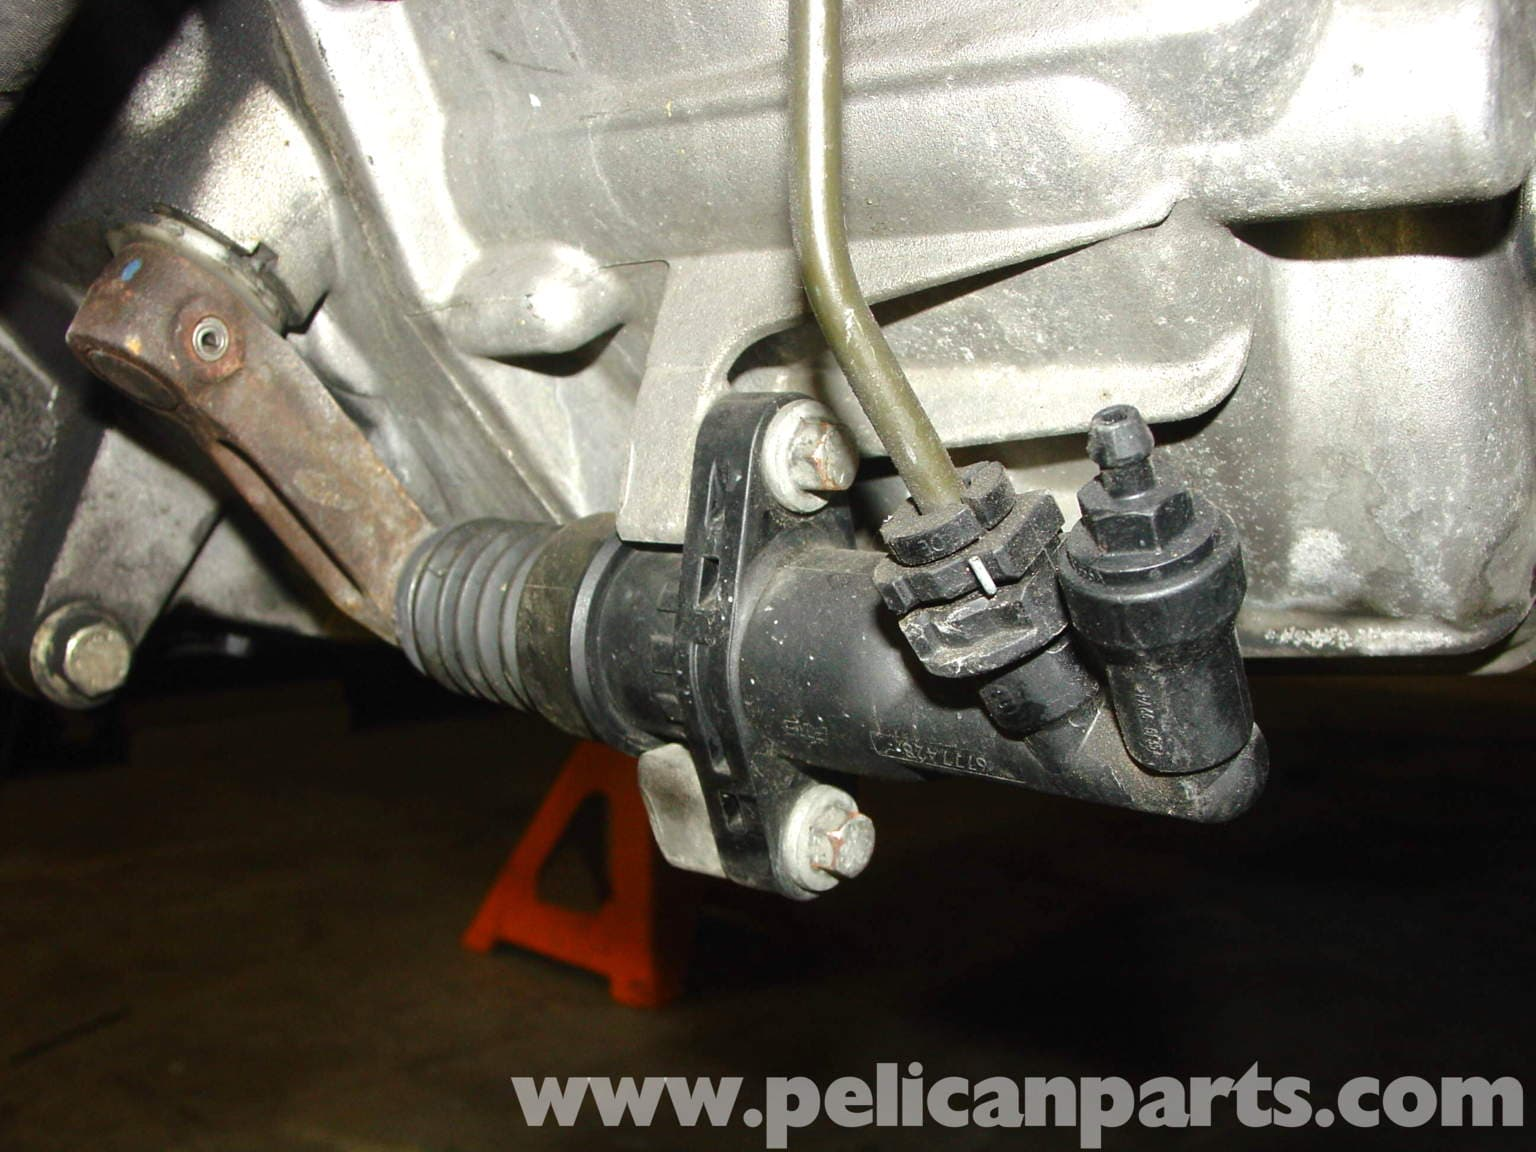 MINI Cooper Clutch Master and Slave Cylinder Replacement ...